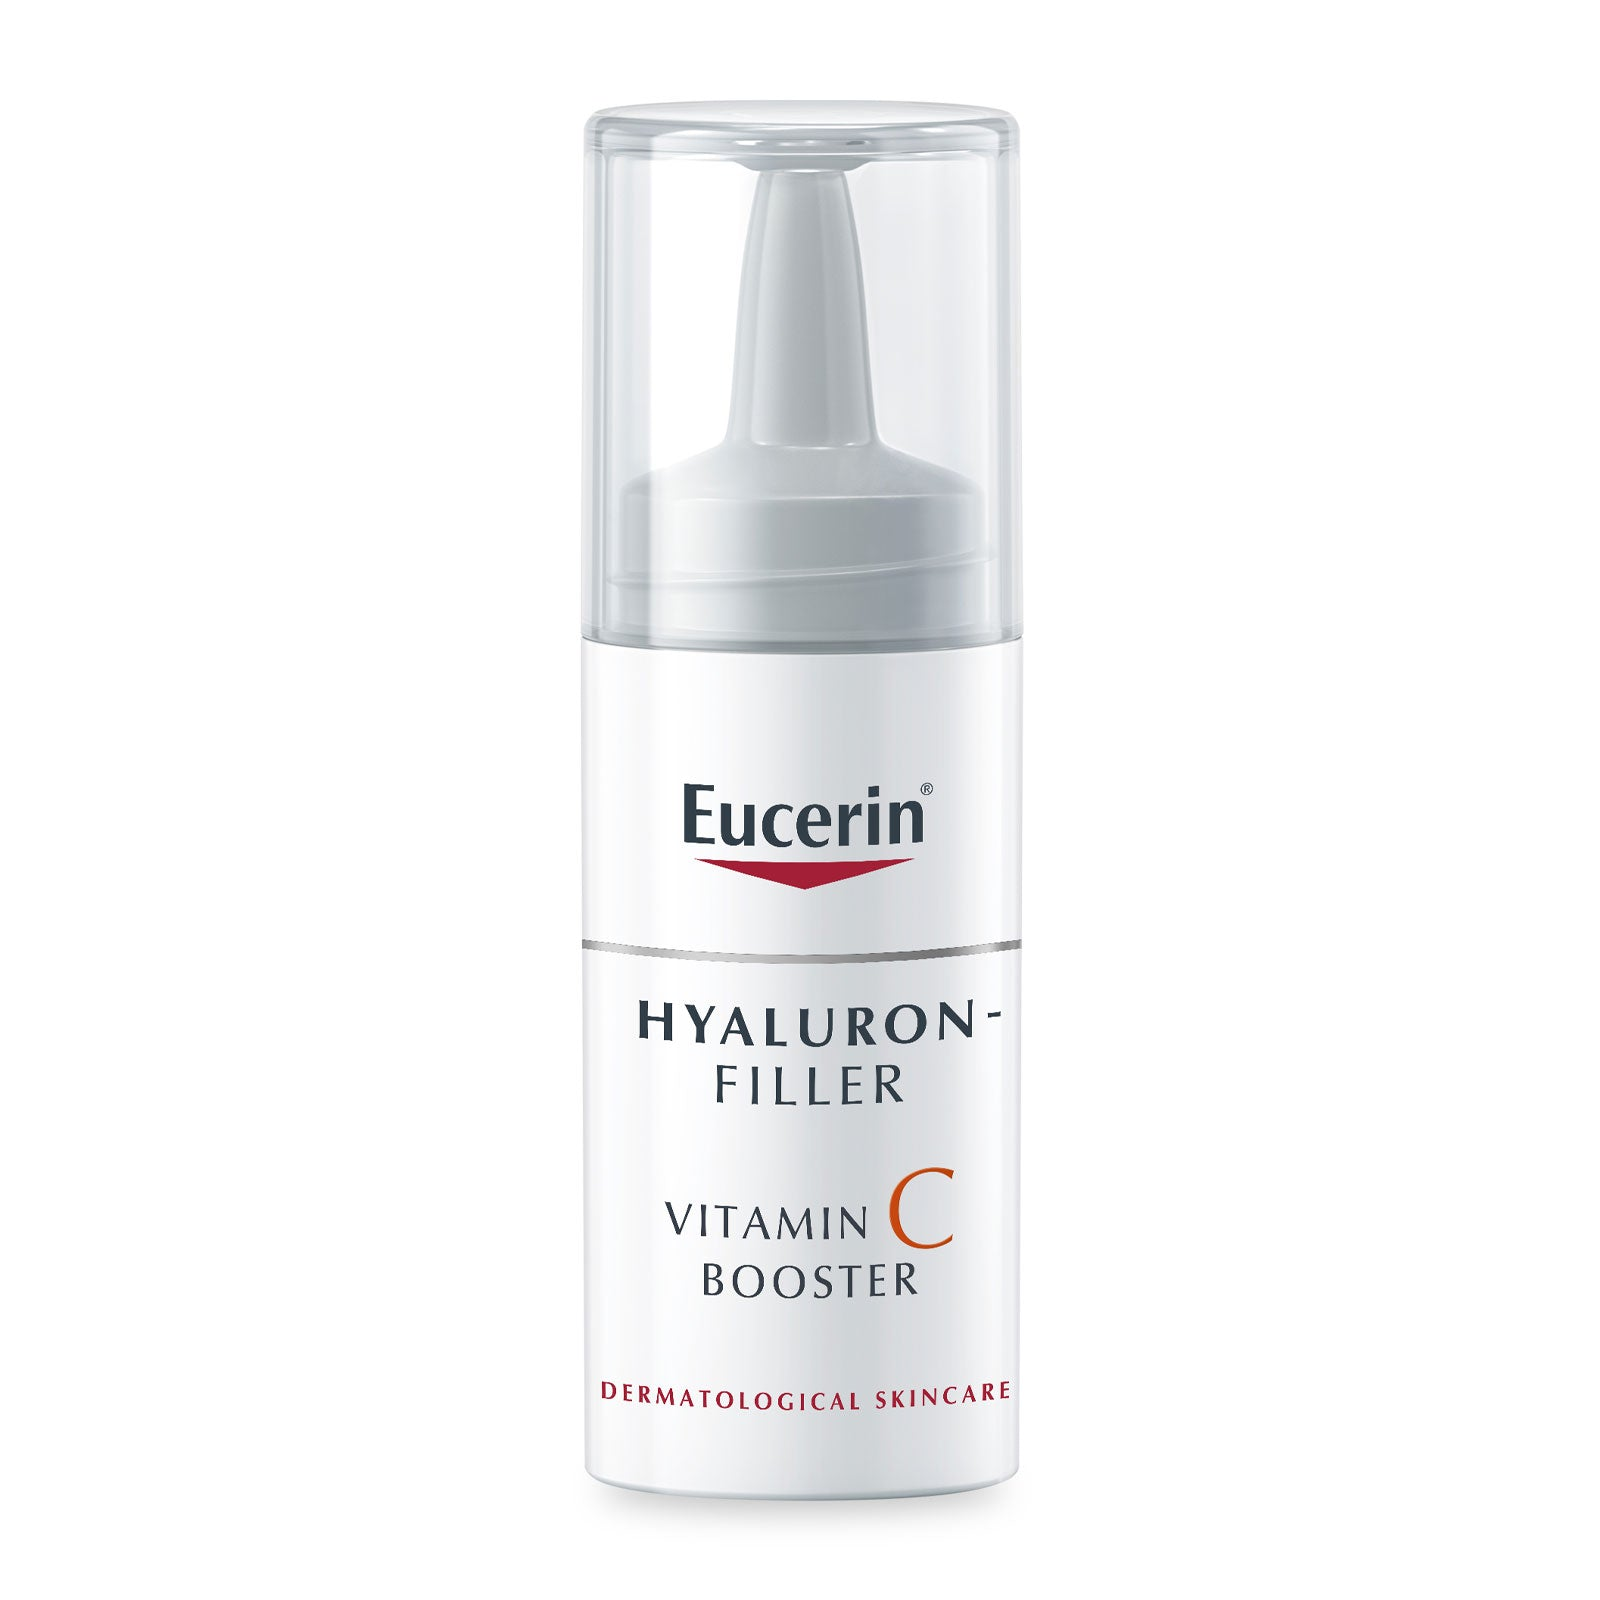 Eucerin Hyaluron Filler 10% Pure Vitamin C Booster 8ml